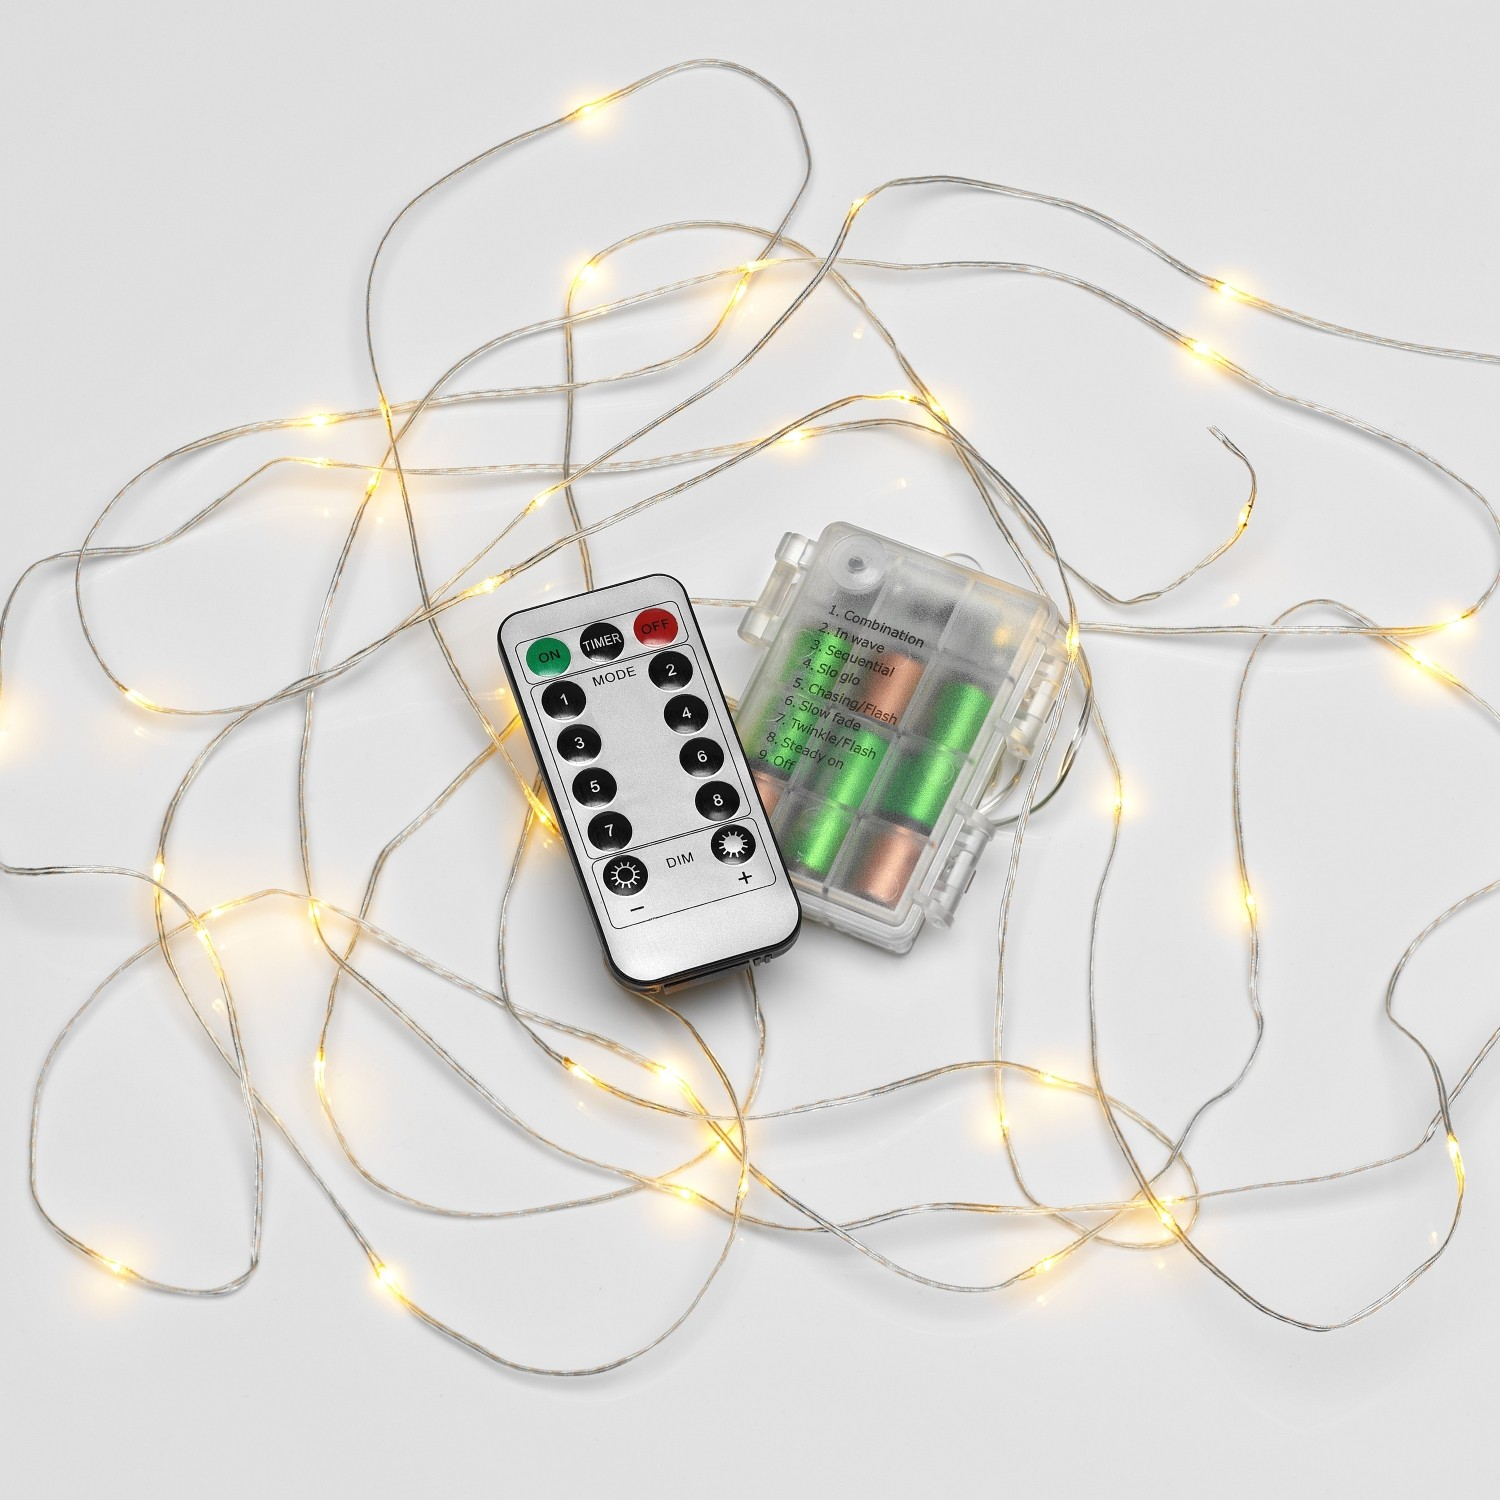 micro led string lights battery operated remote controlled outdoor 5m safield distribution. Black Bedroom Furniture Sets. Home Design Ideas